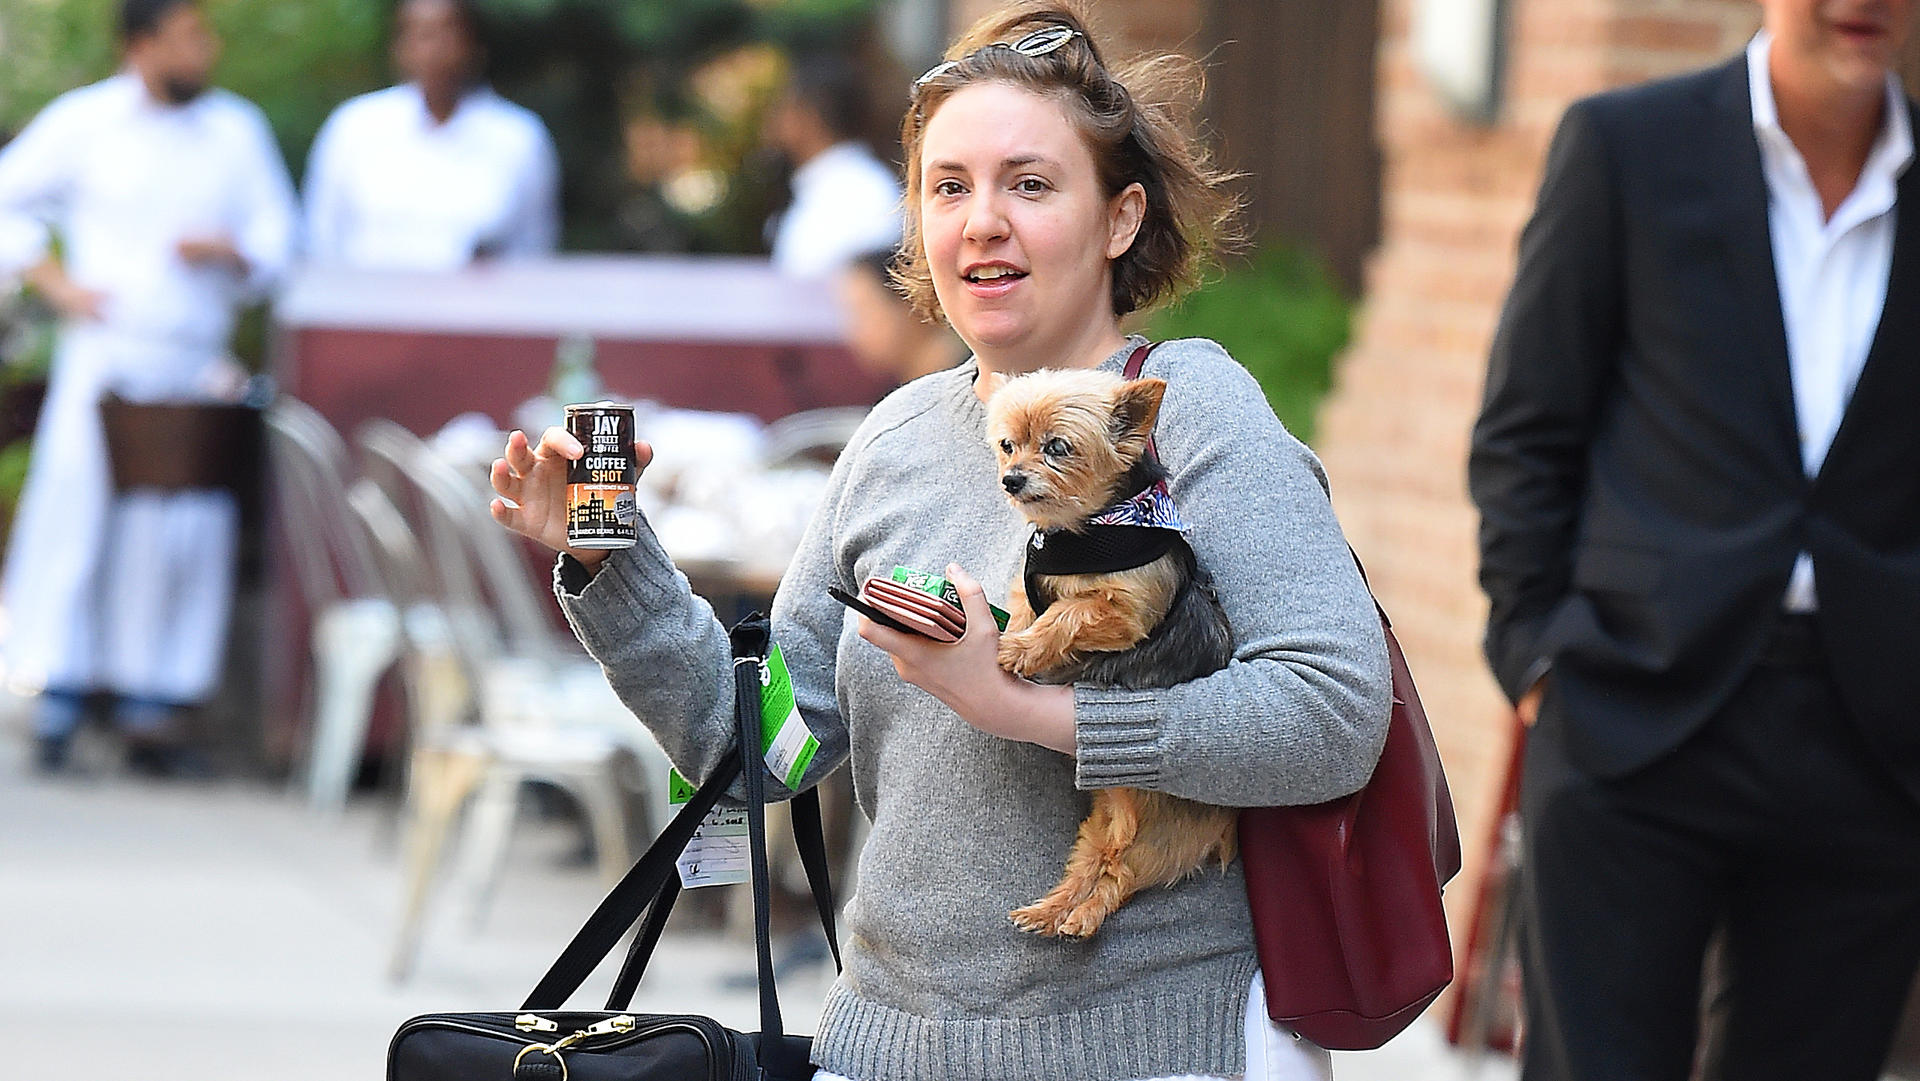 Lena Dunham holds a dog in New York CityPictured: Lena DunhamRef: SPL5008899 090718 NON-EXCLUSIVEPicture by: Robert O'neil / SplashNews.comSplash News and PicturesLos Angeles: 310-821-2666New York: 212-619-2666London: 0207 644 7656Milan: +39 02 4399